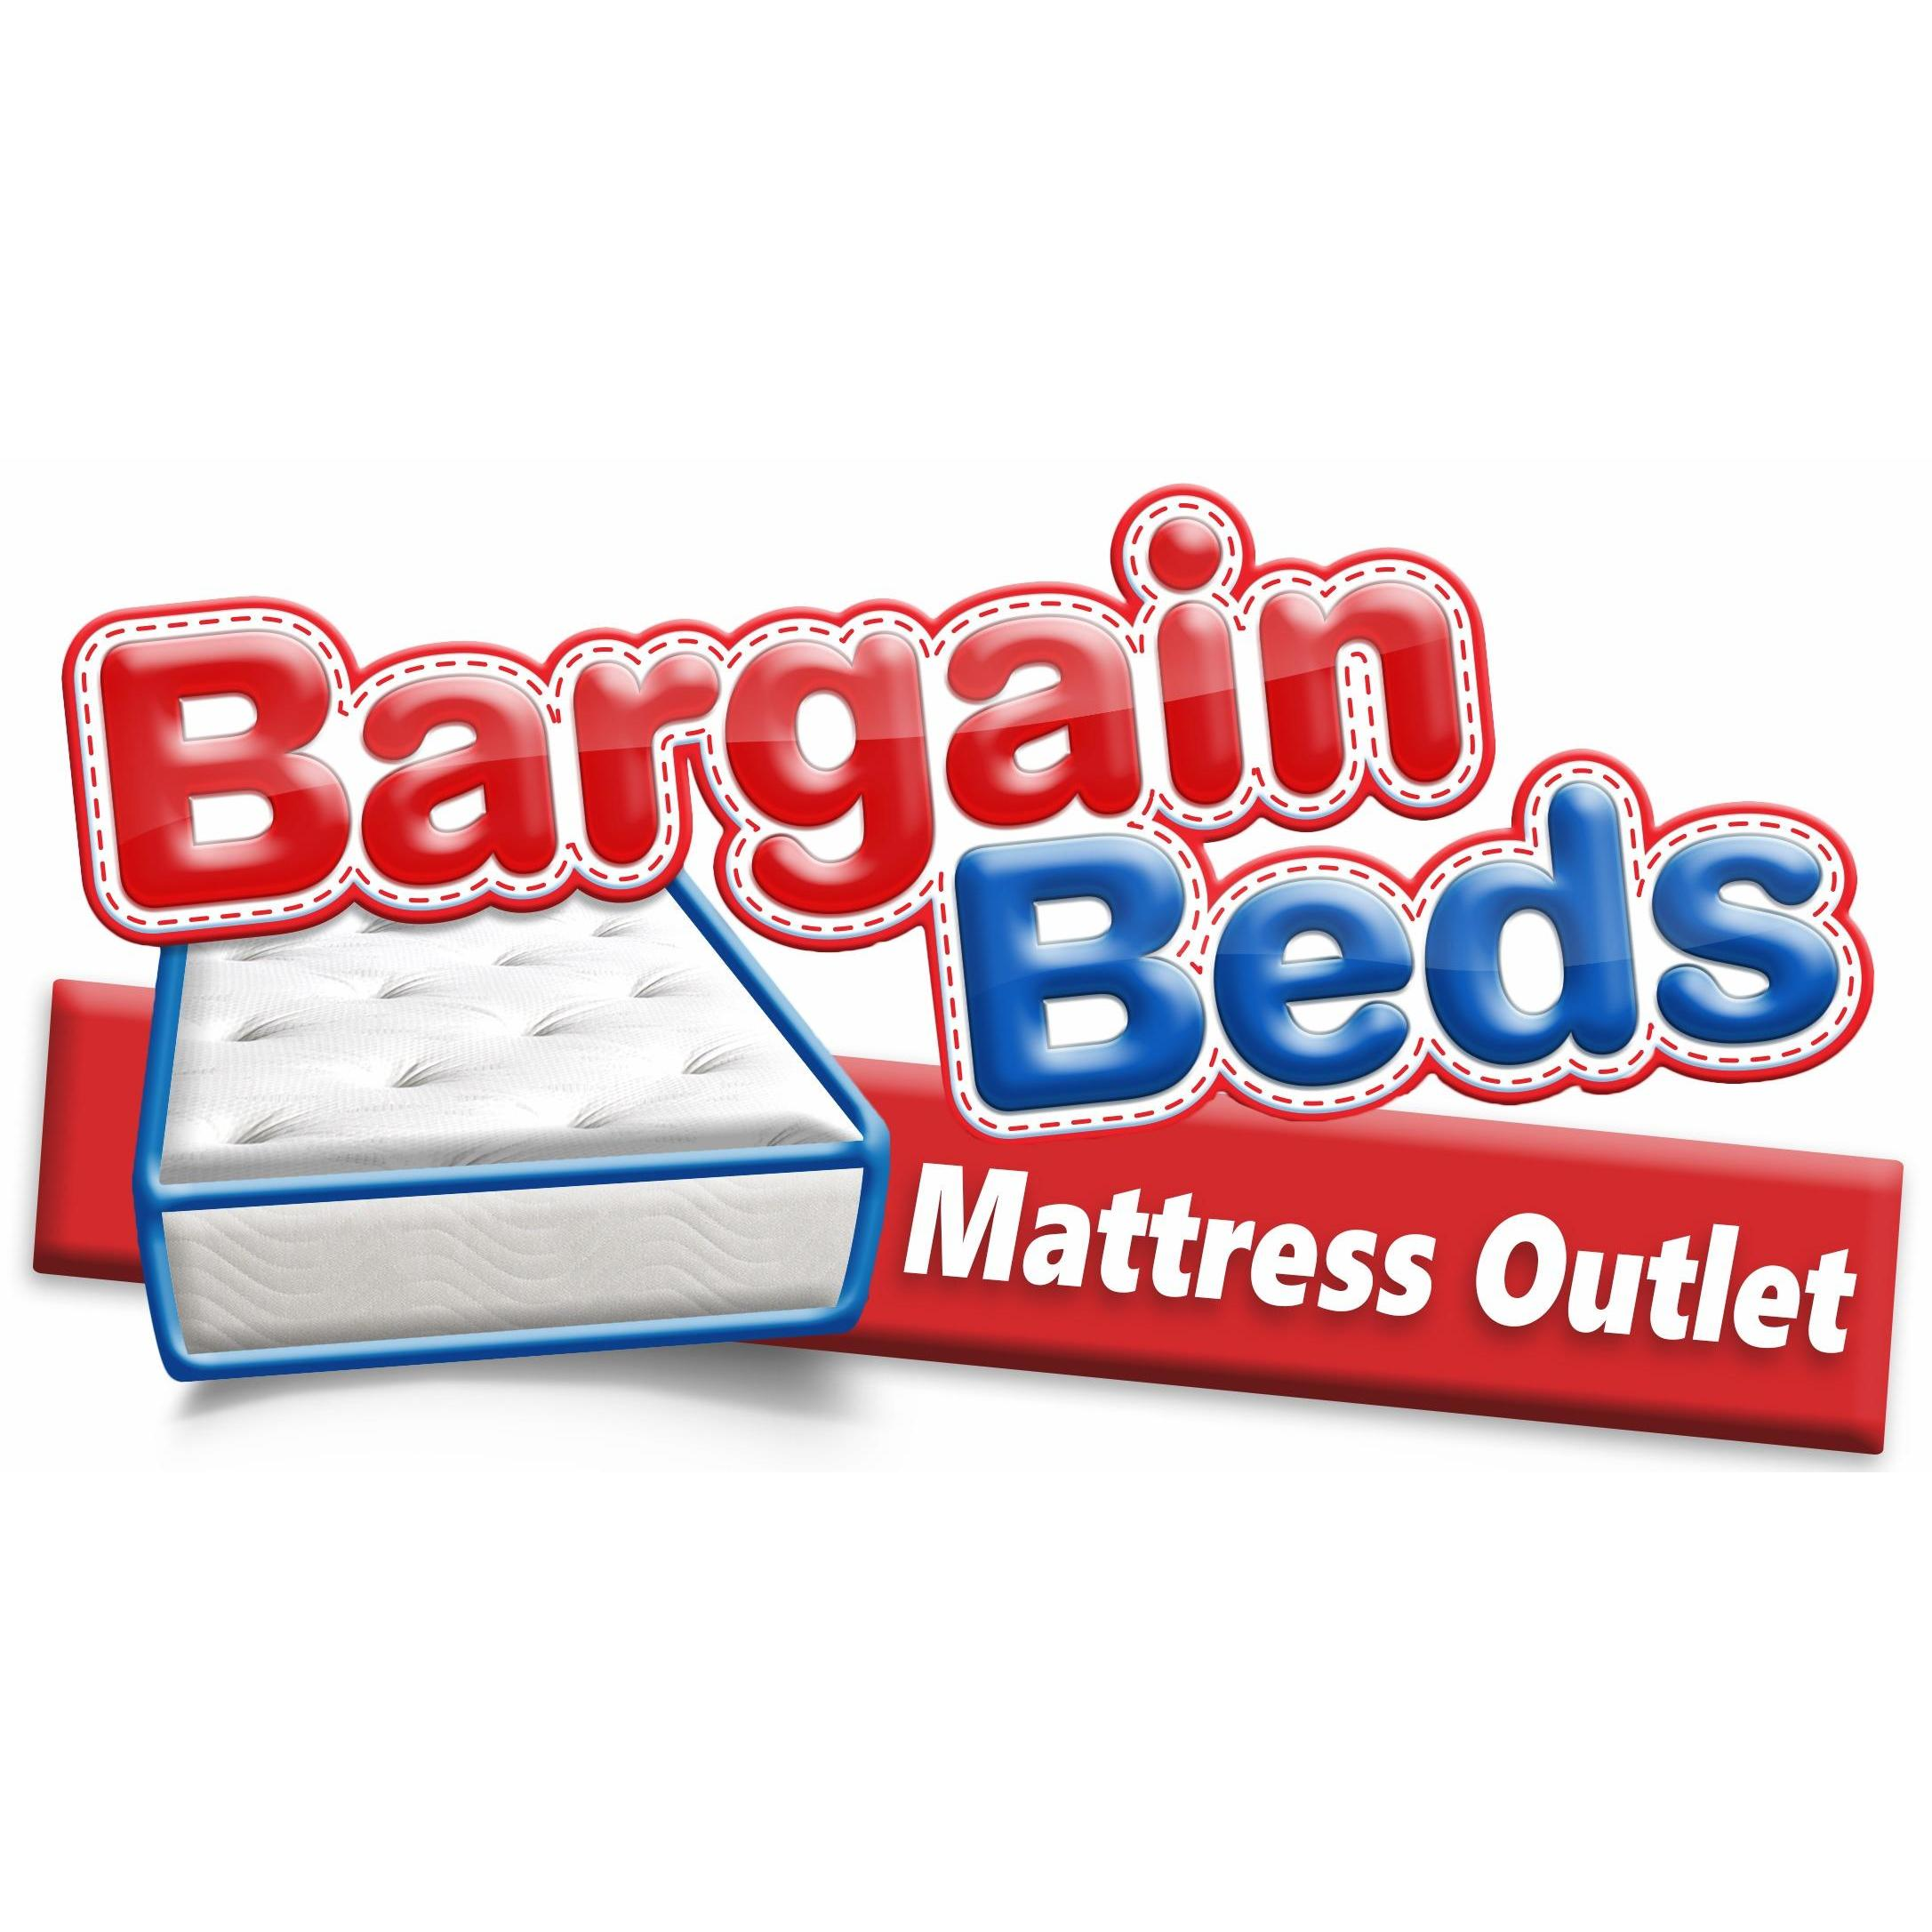 Bargain Beds Mattress Outlet